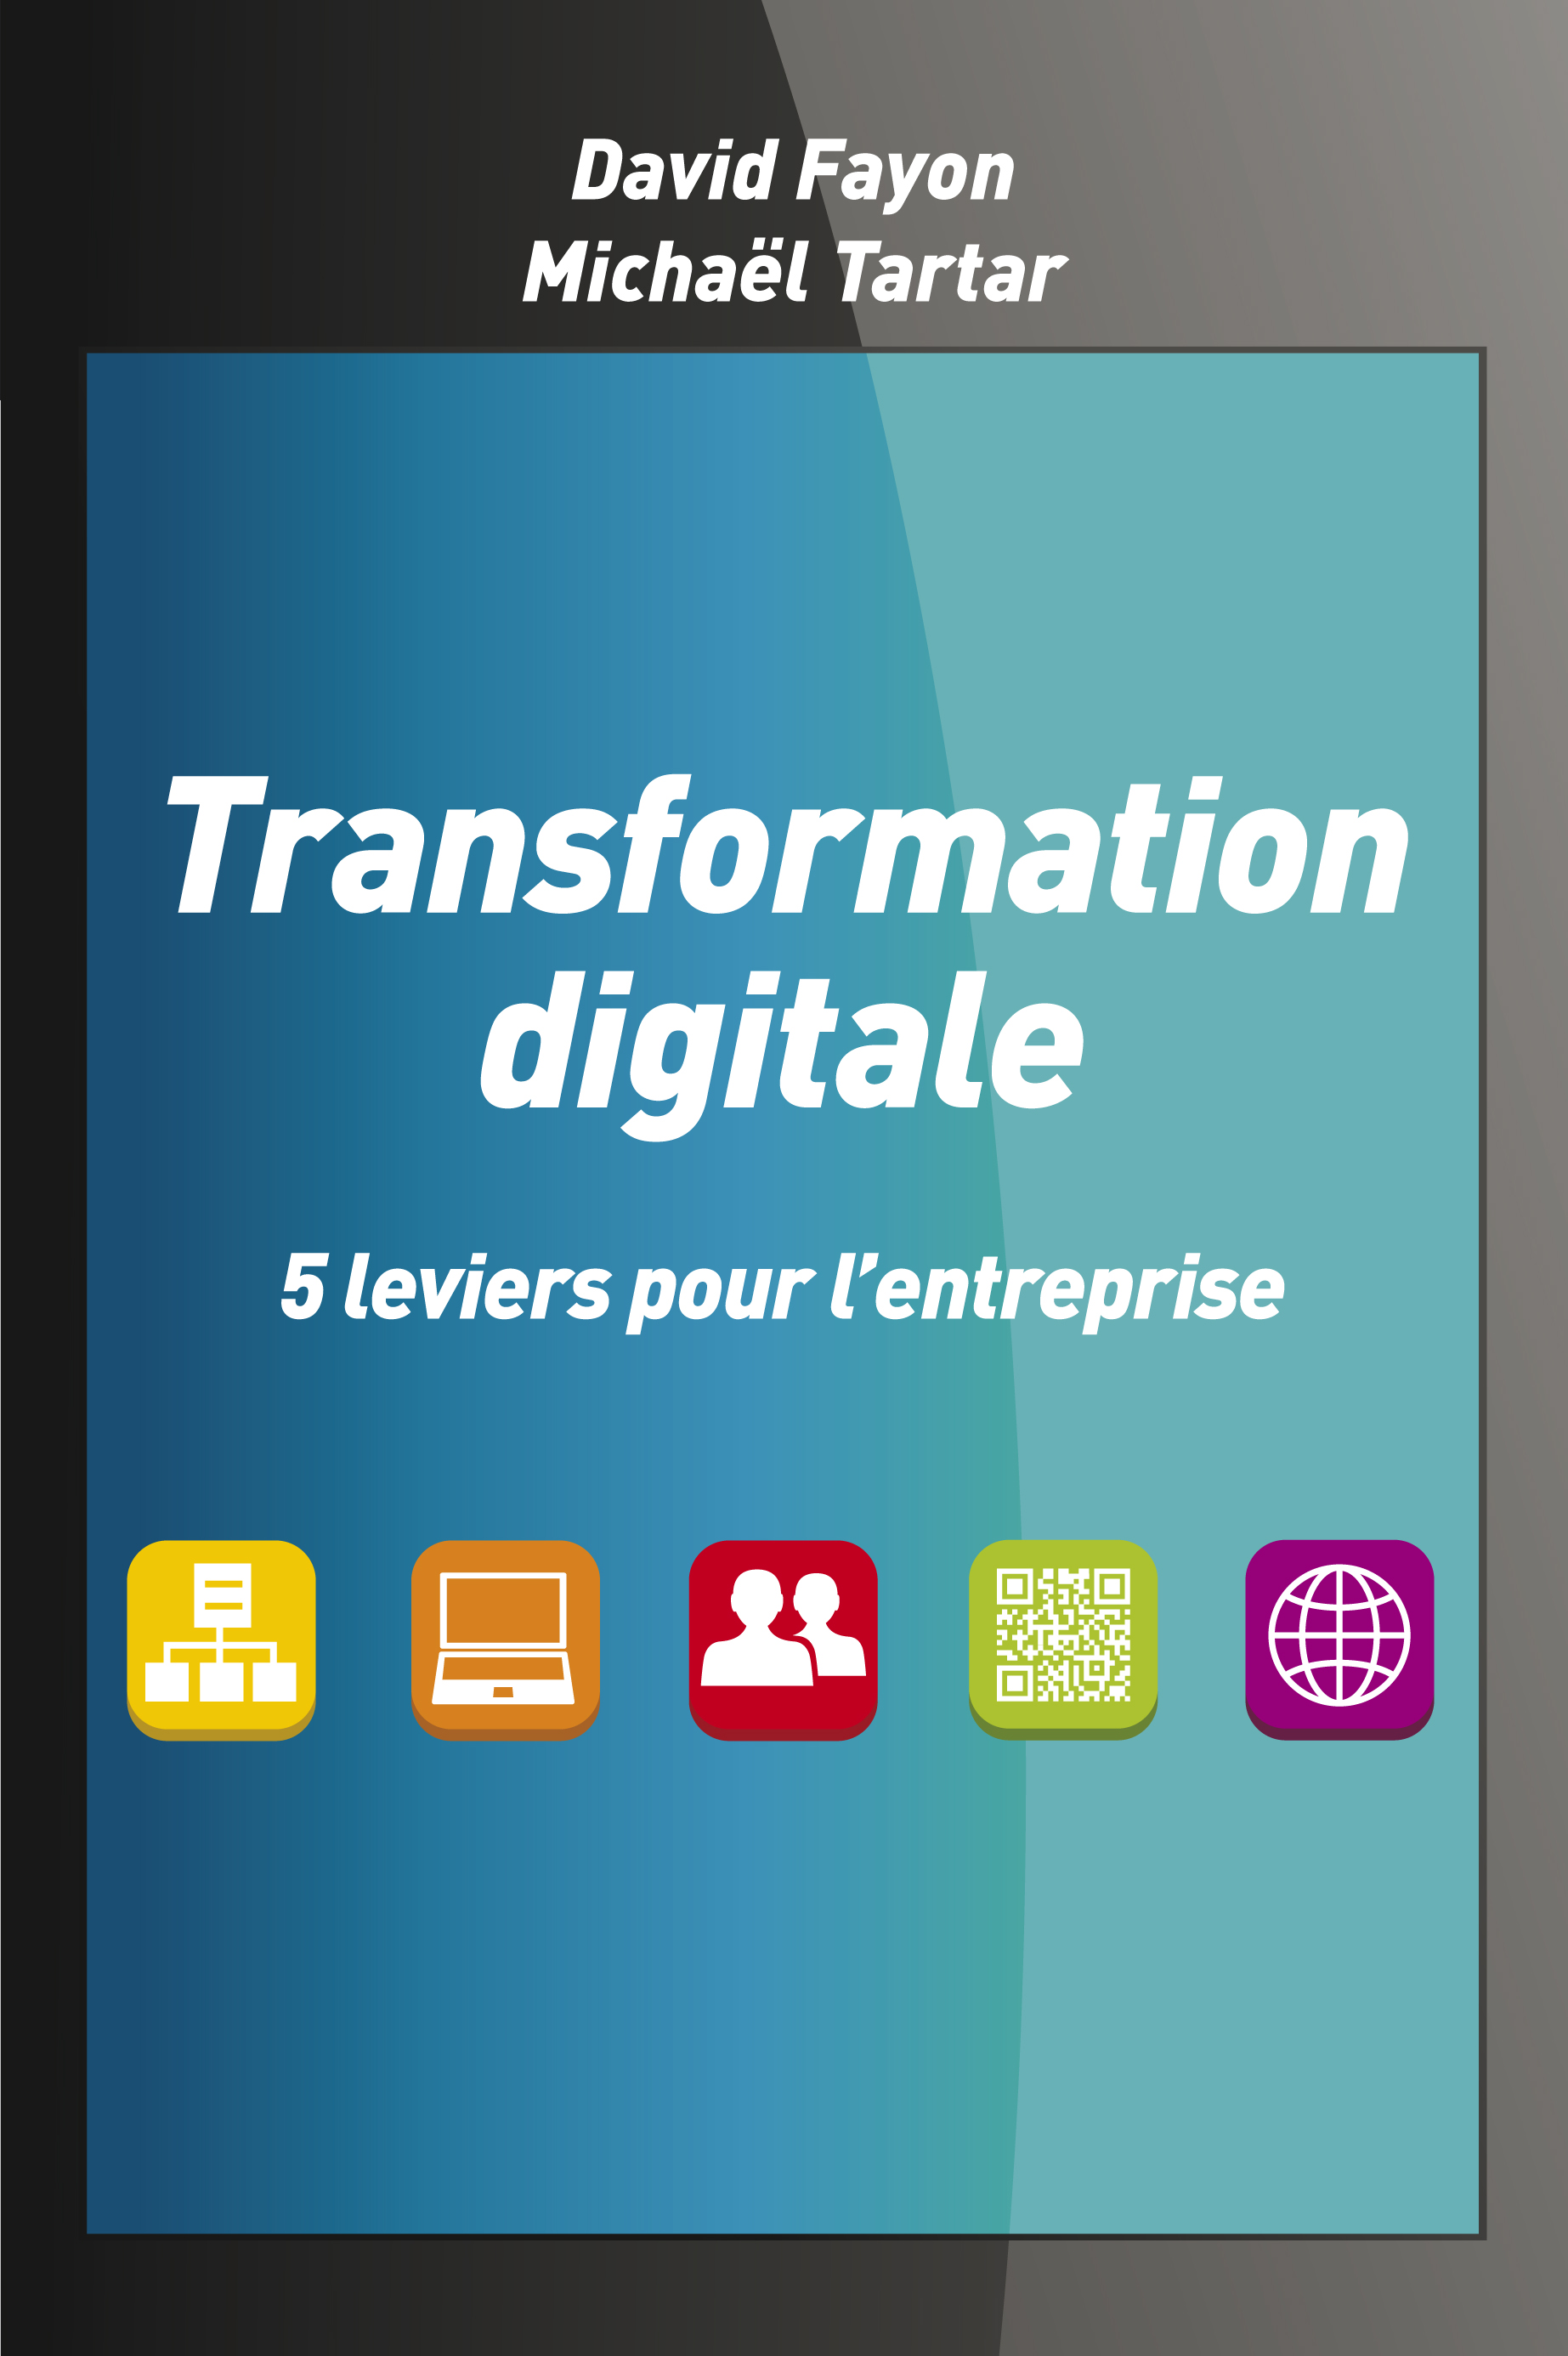 la transformation digitale - David Fayon